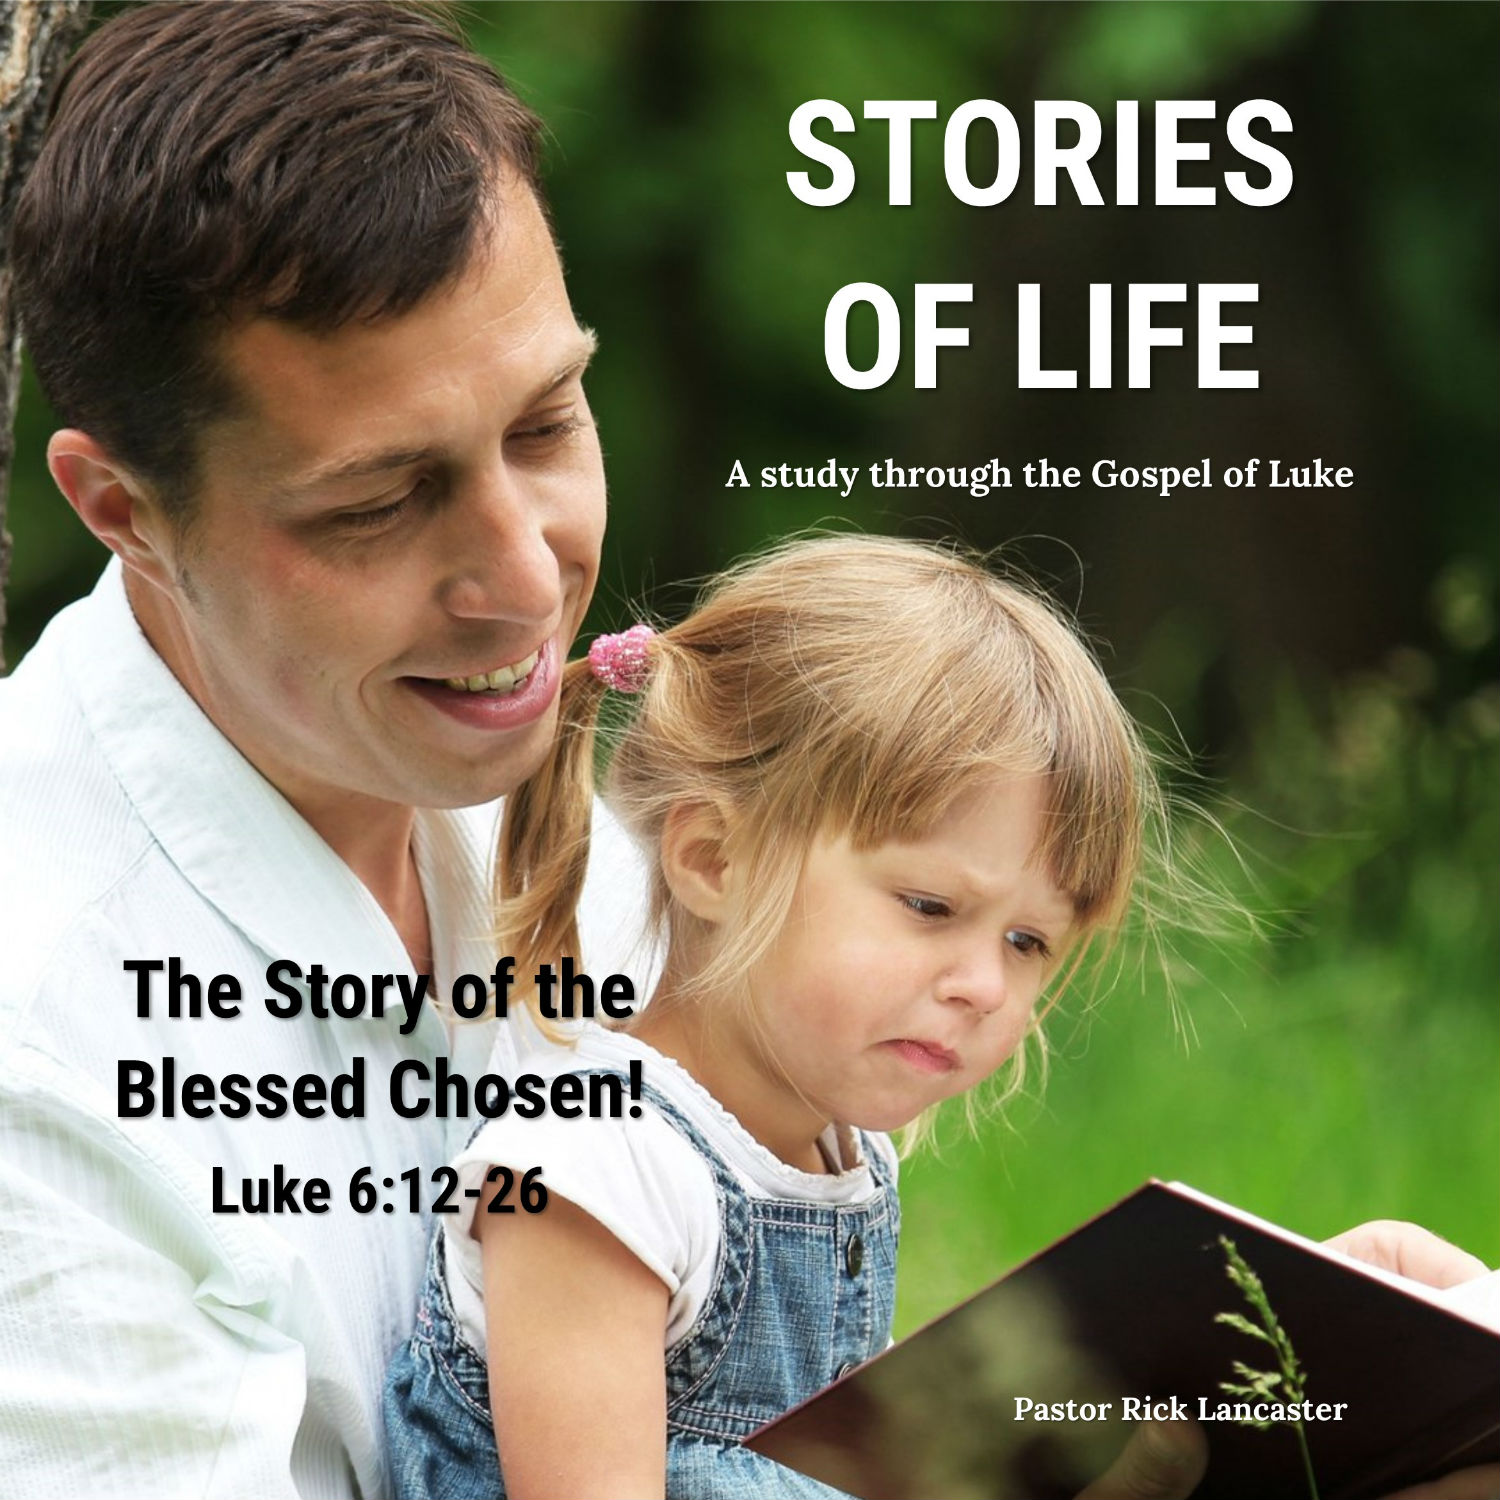 The Story of the Blessed Chosen – Luke 6:12-26